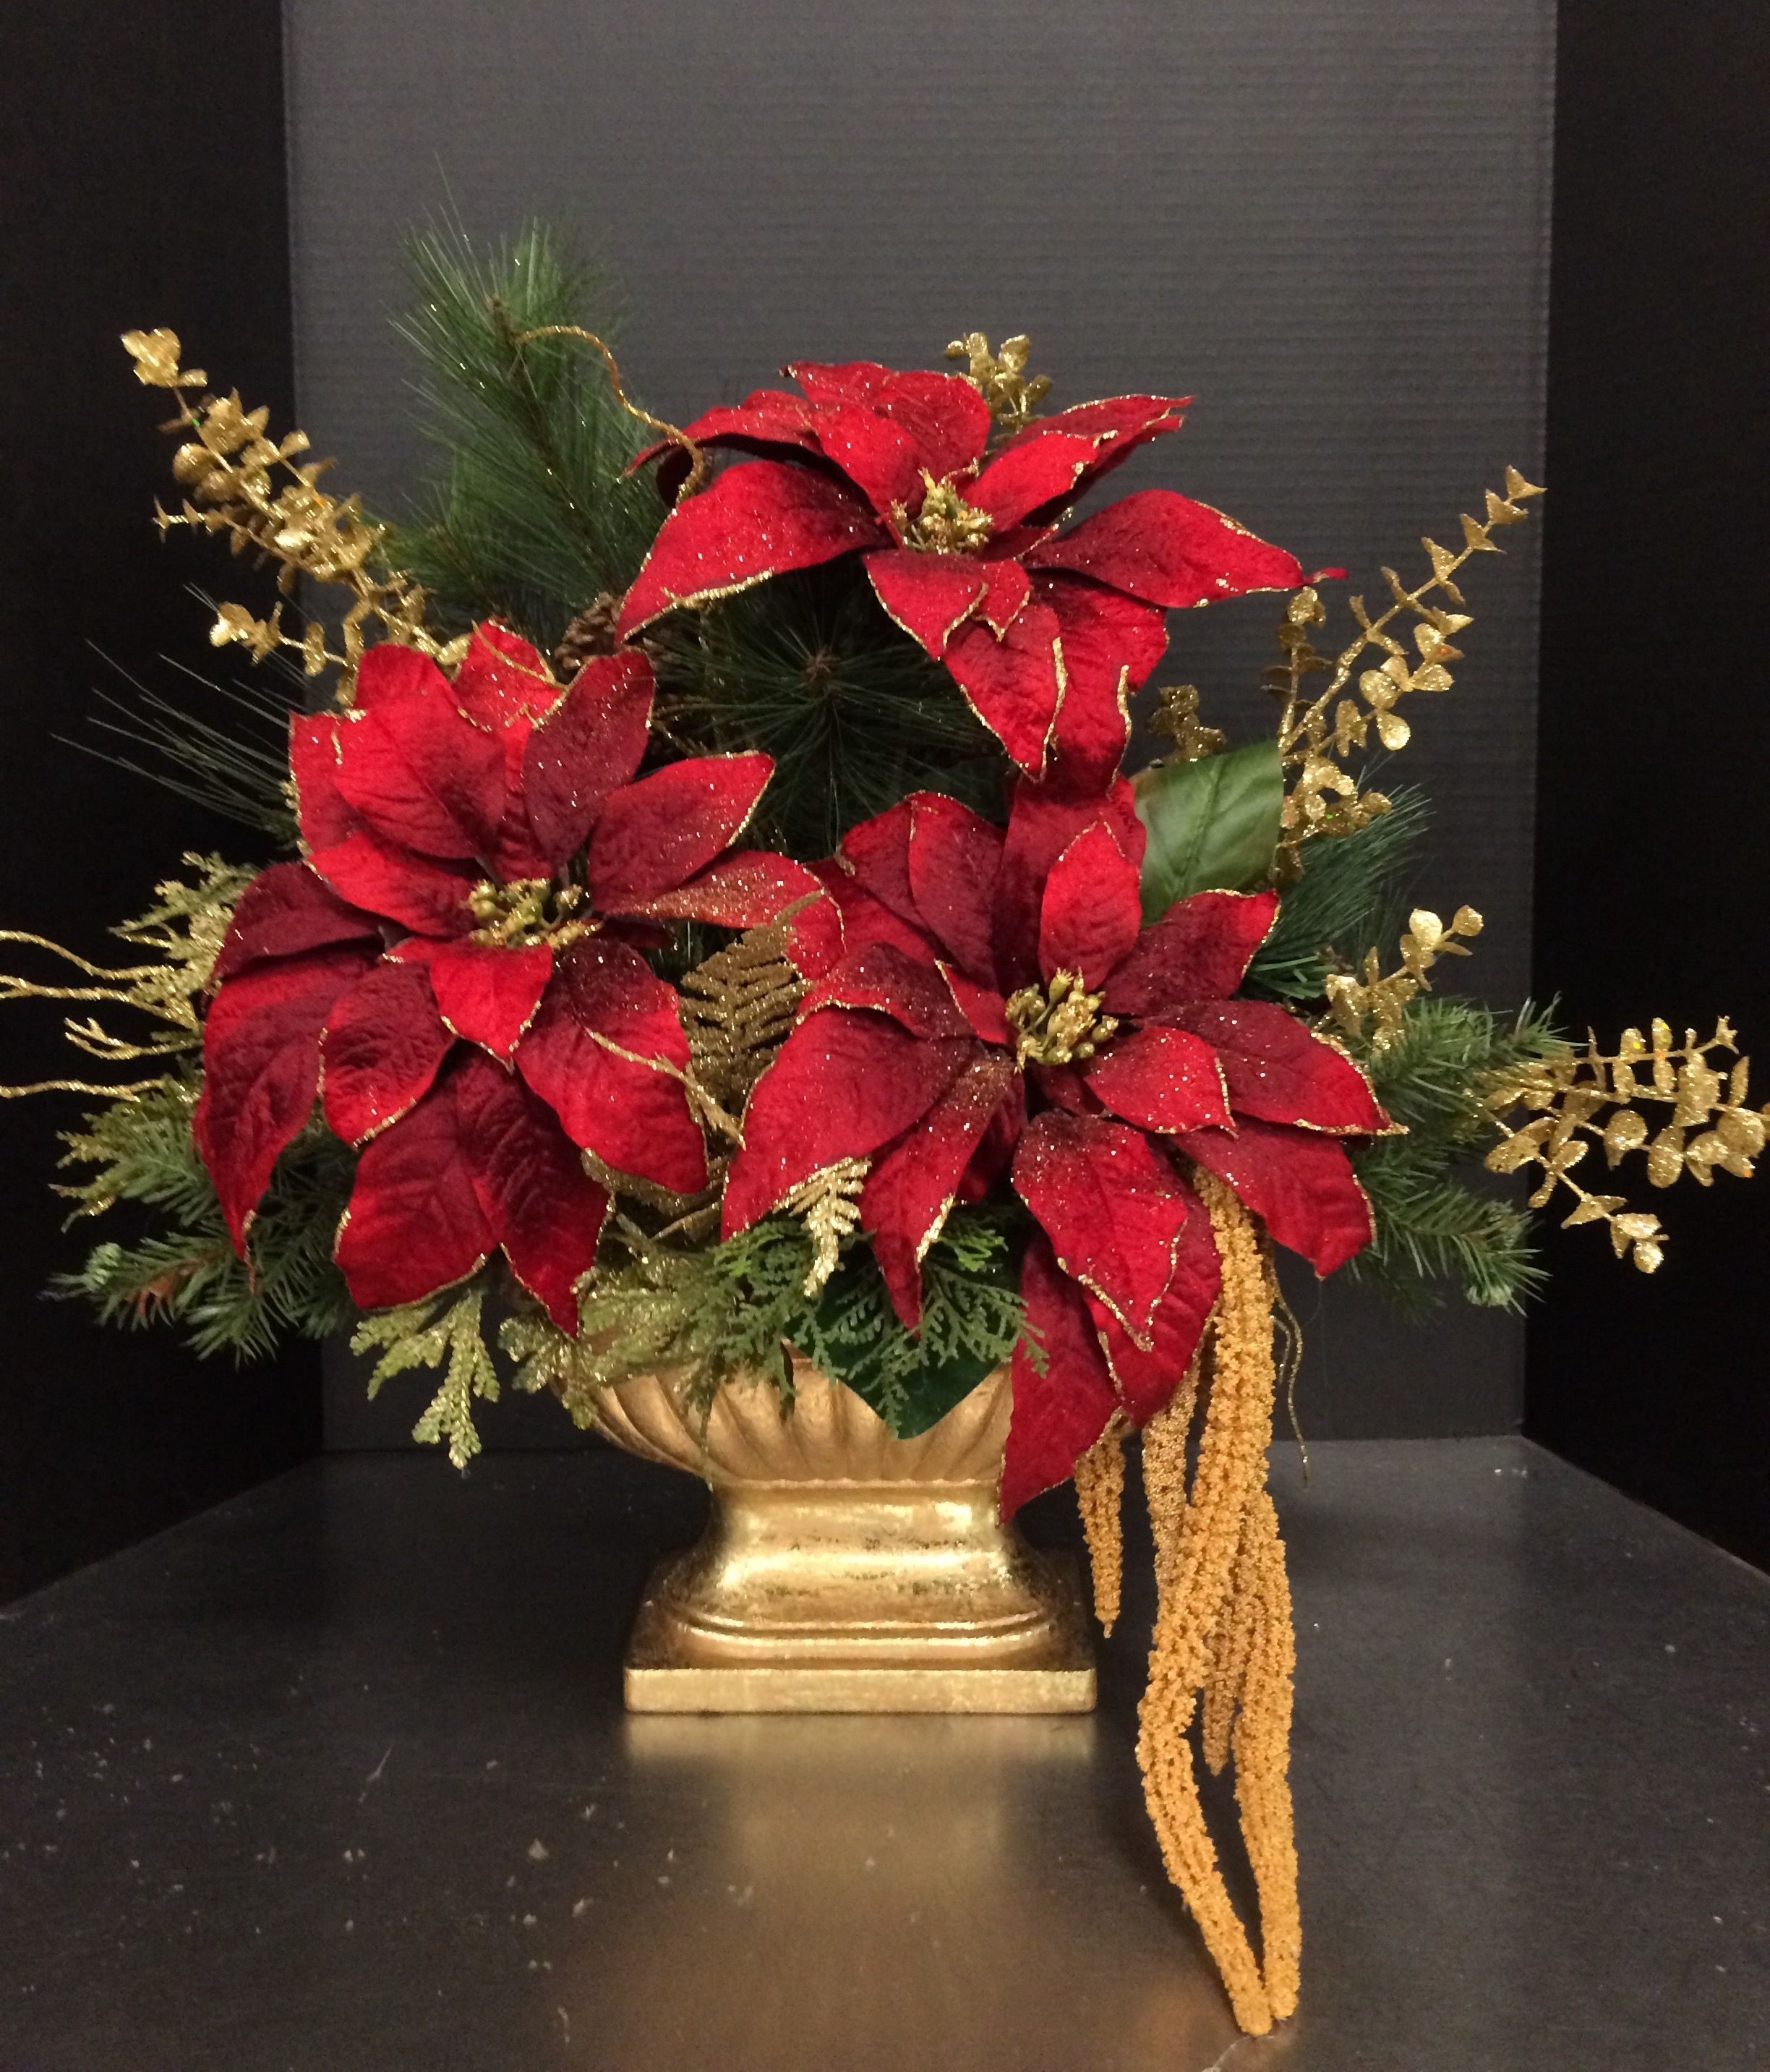 Traditional Poinsettia 2016 by Andrea